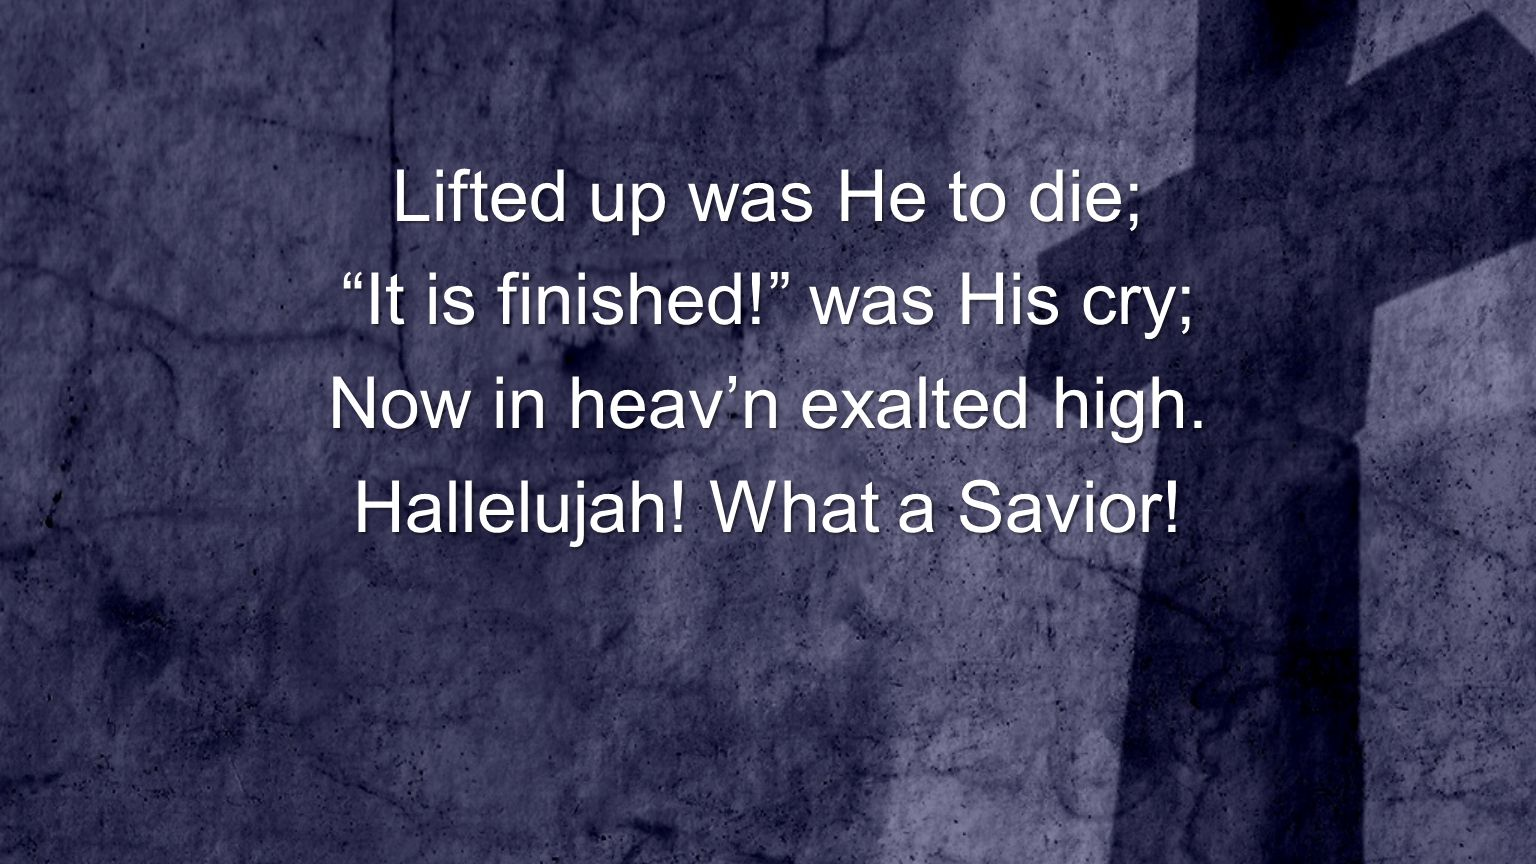 Lifted up was He to die; It is finished! was His cry; Now in heav'n exalted high.